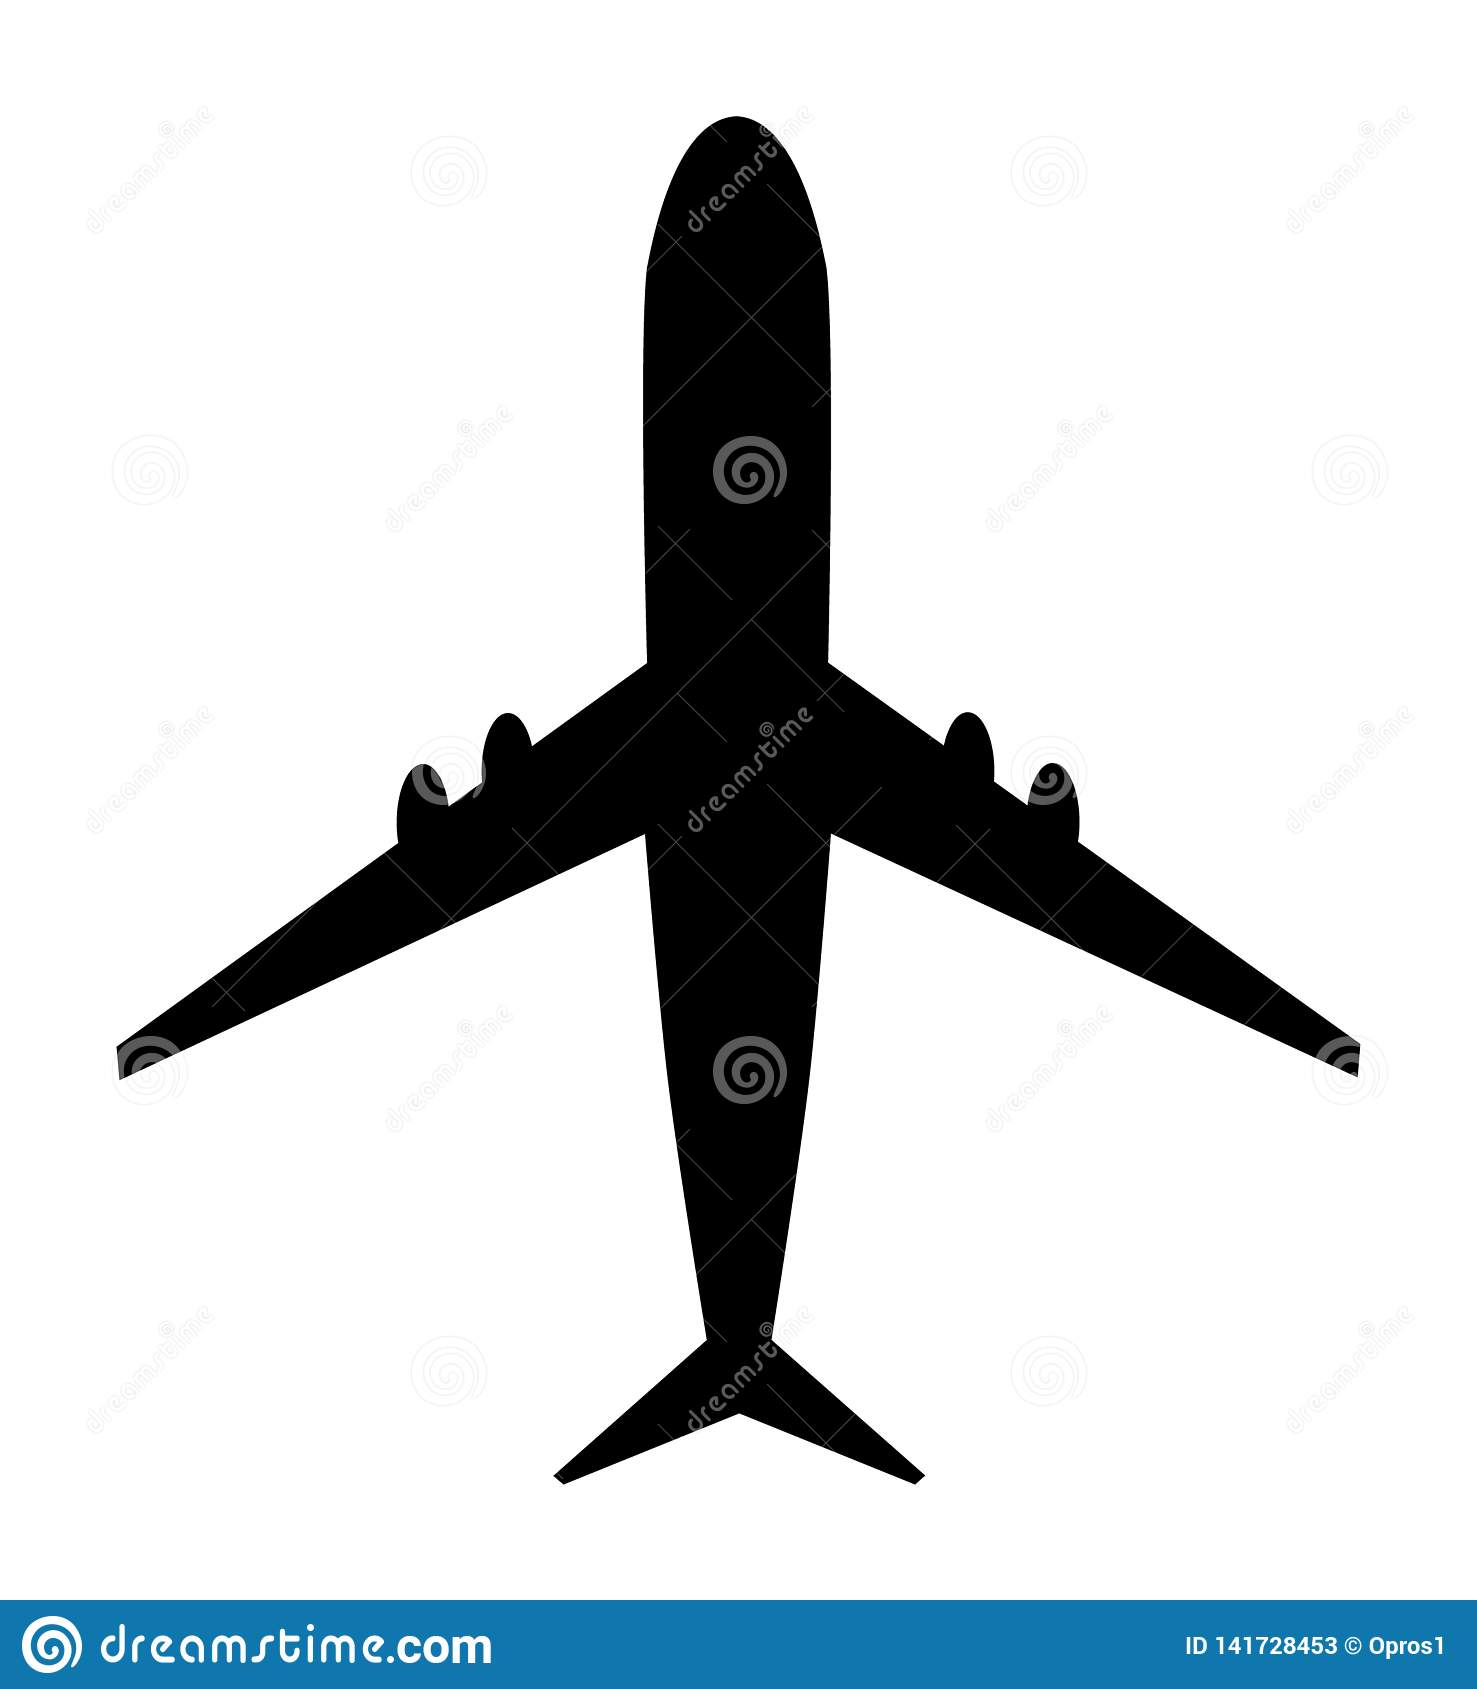 Airplane vector icon. Modern design, Fly travel symbol on white background